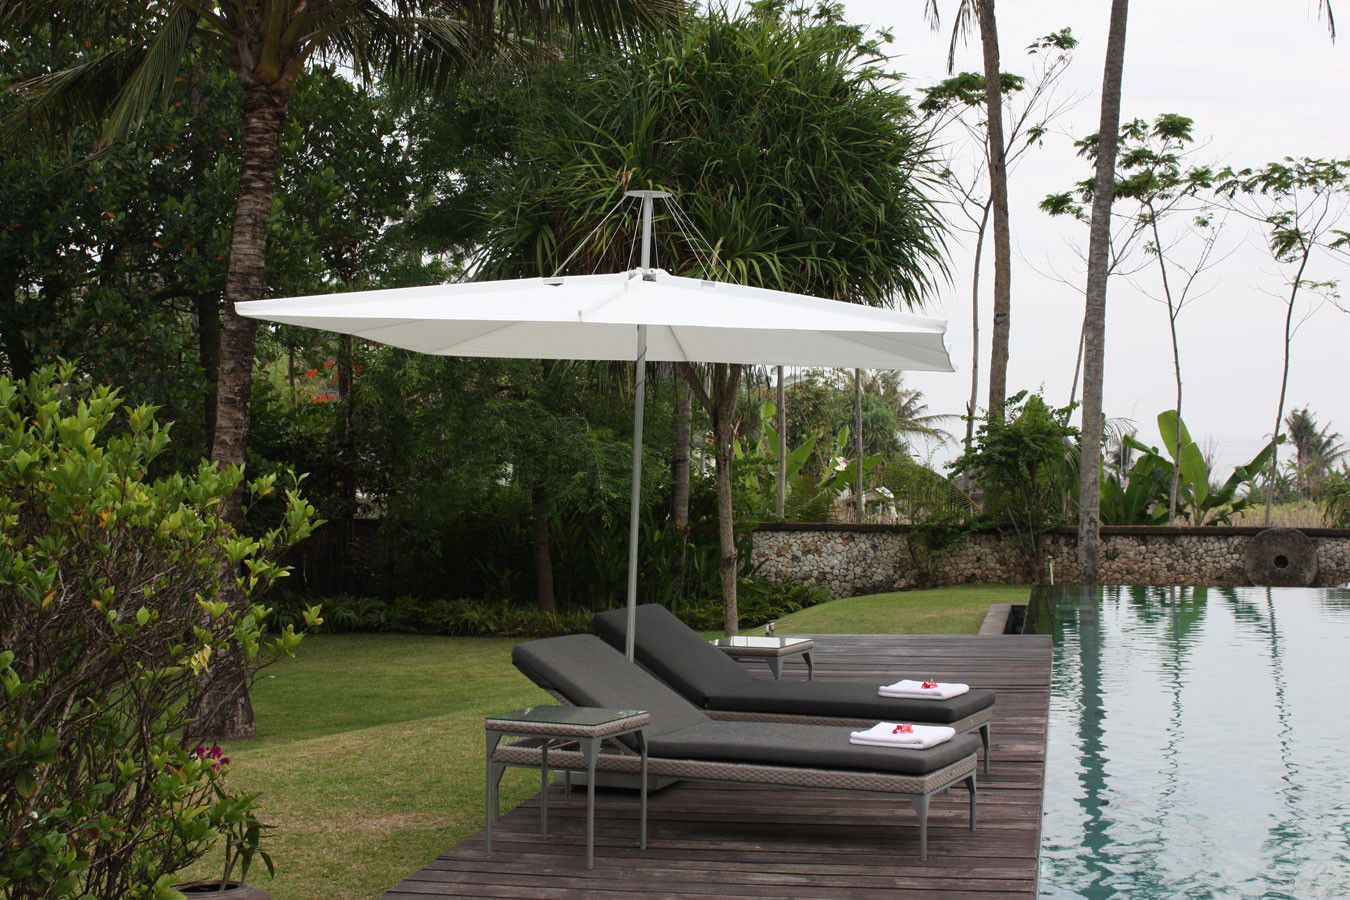 fiberbuilt master alone umbrella designs patio umbrellas stand ft garden hayneedle outdoor wind resistant